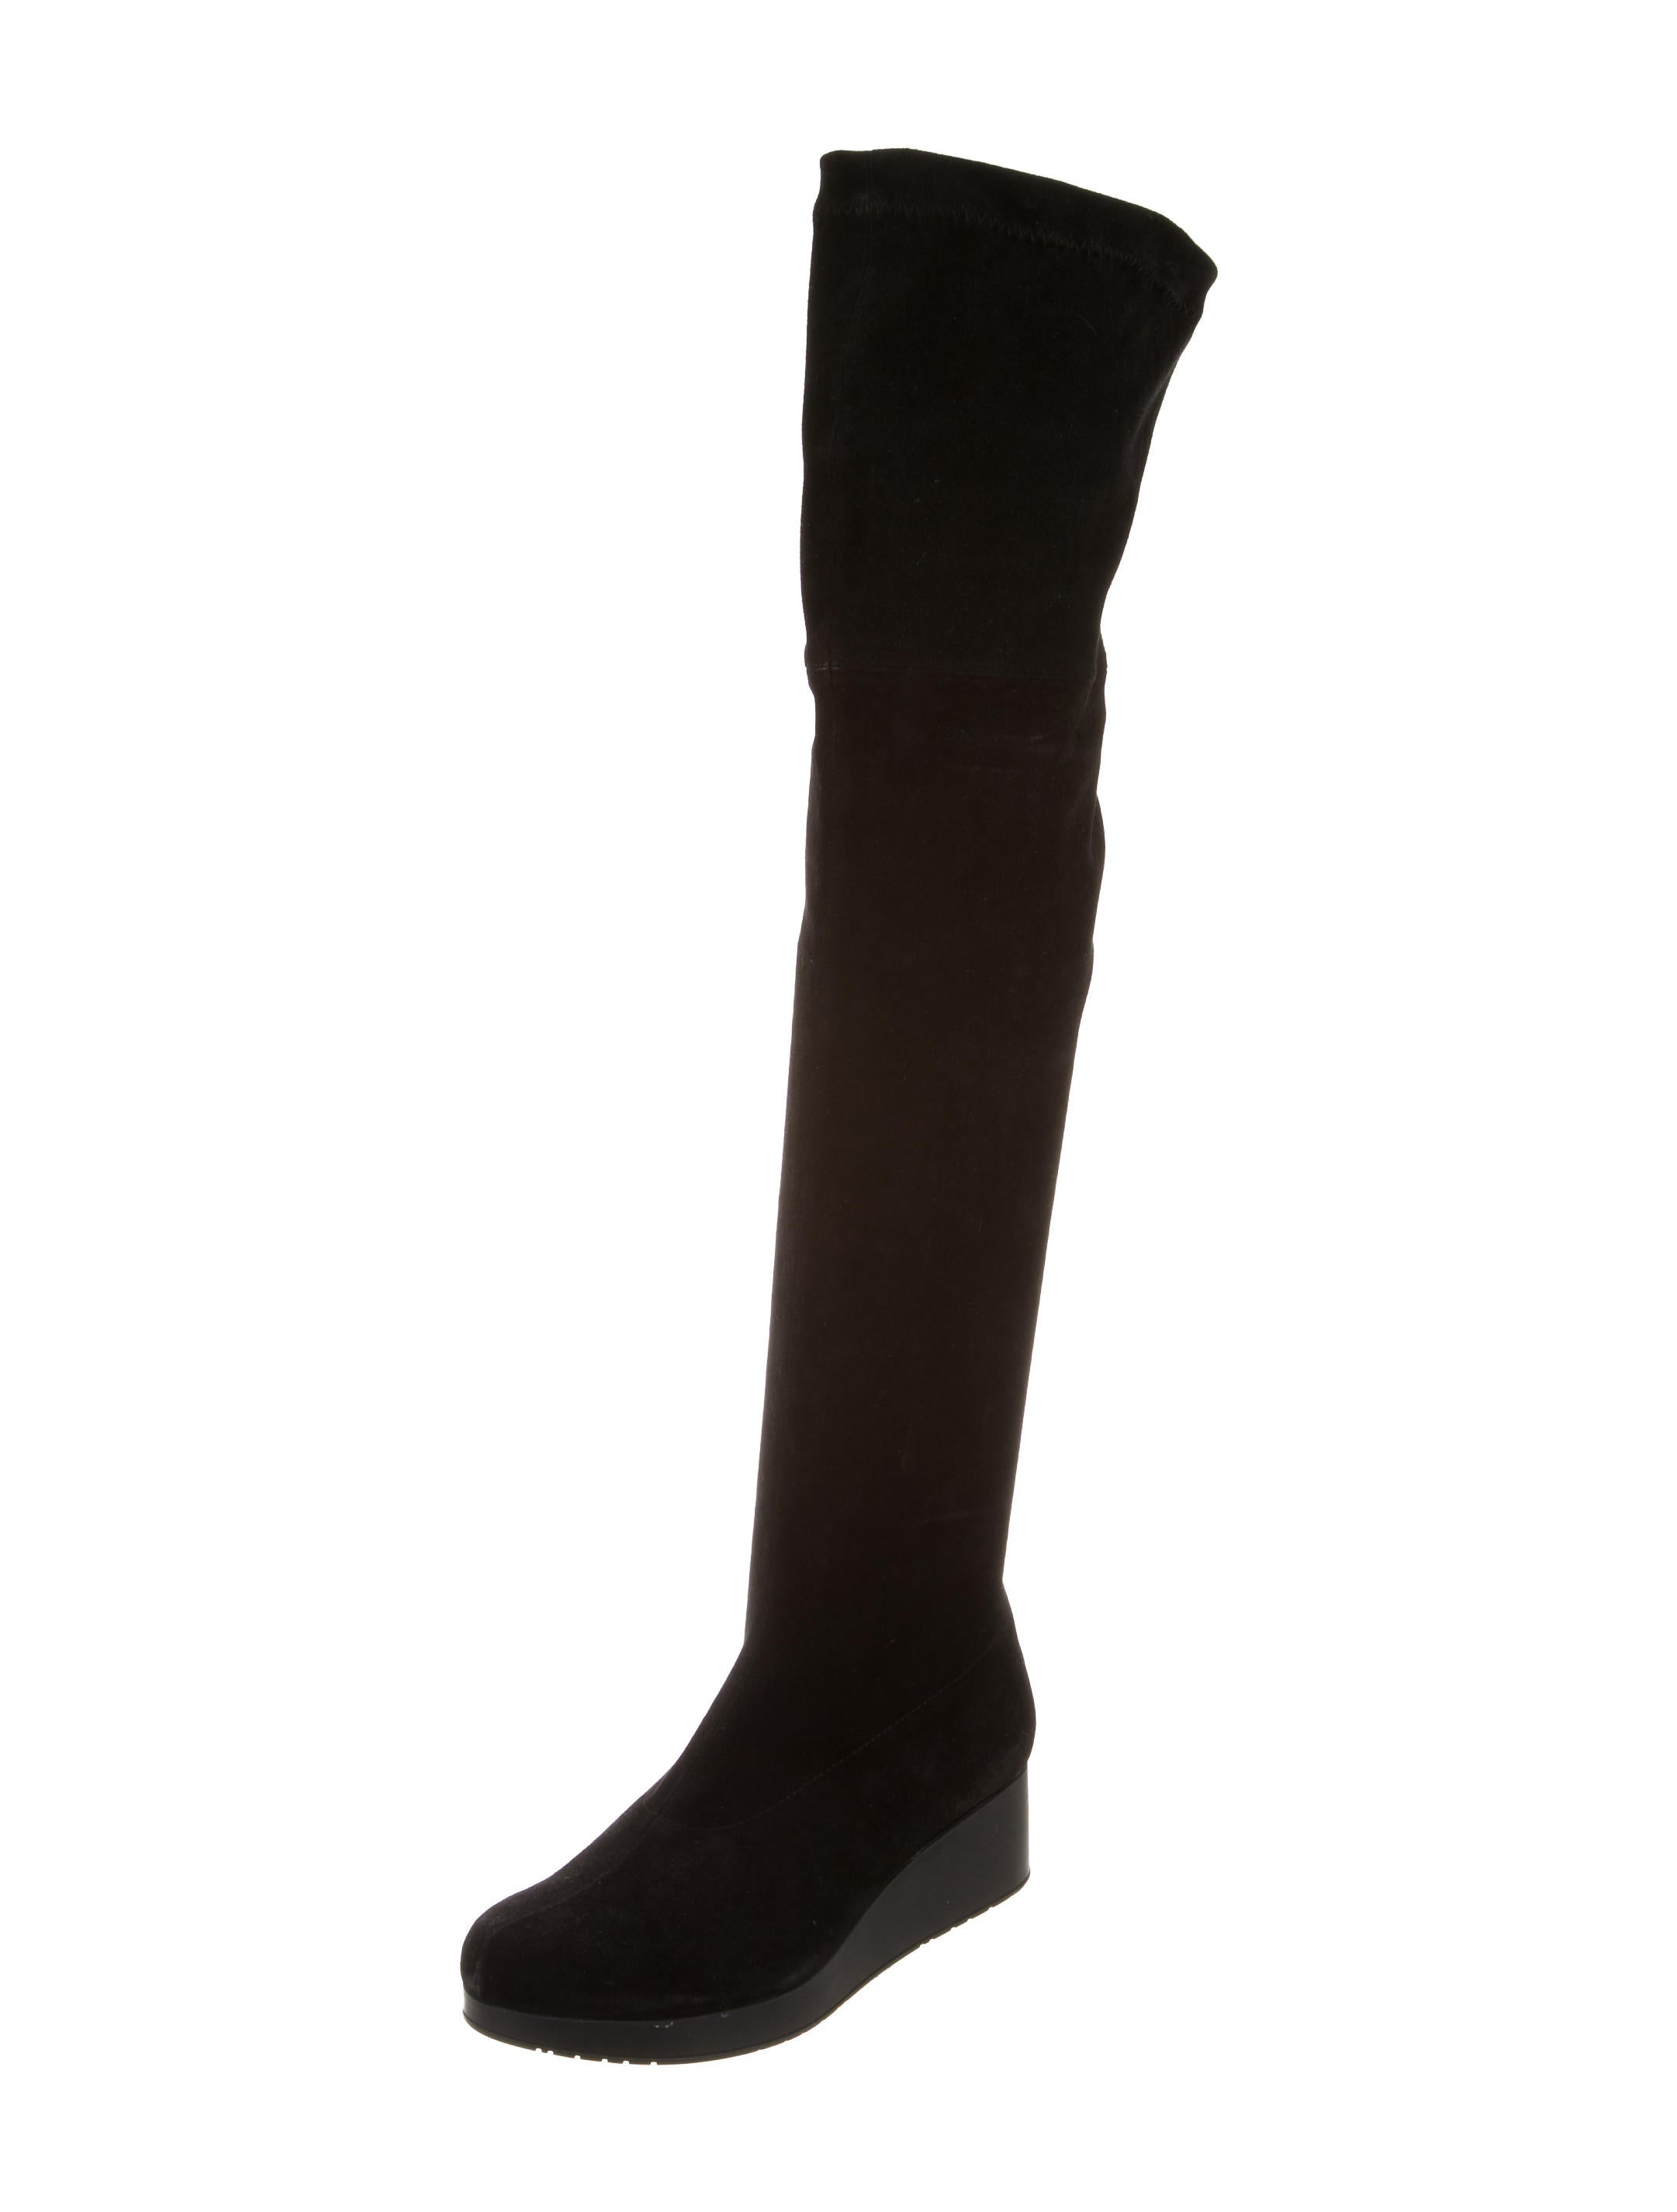 robert clergerie suede wedge boots shoes rog25119